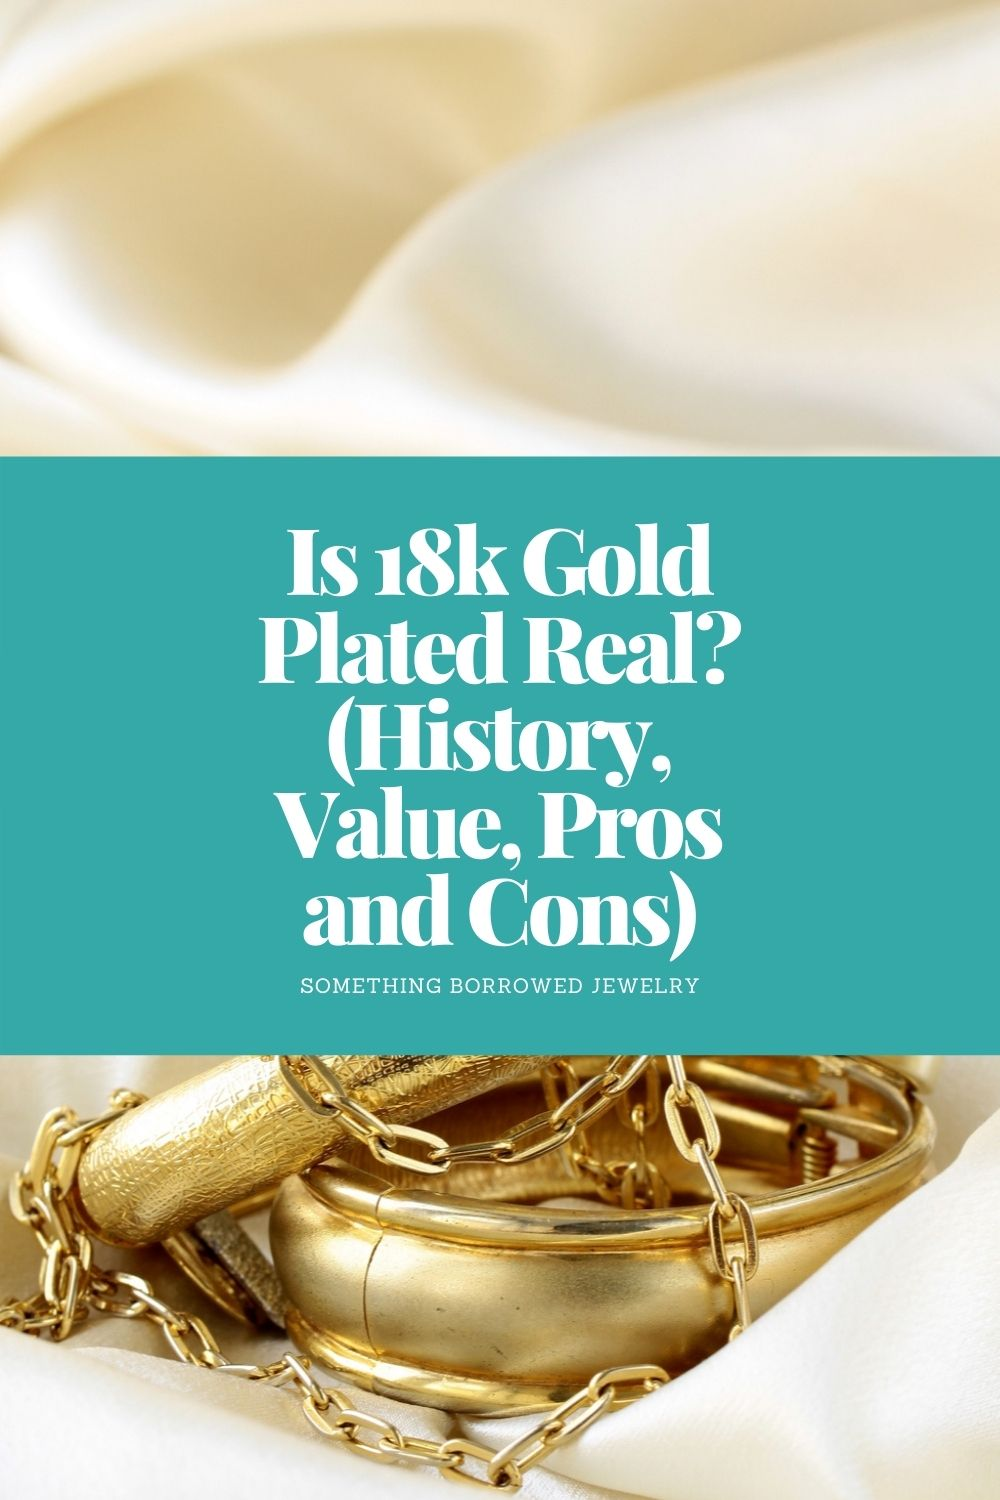 Is 18k Gold Plated Real (History, Value, Pros and Cons) pin 2